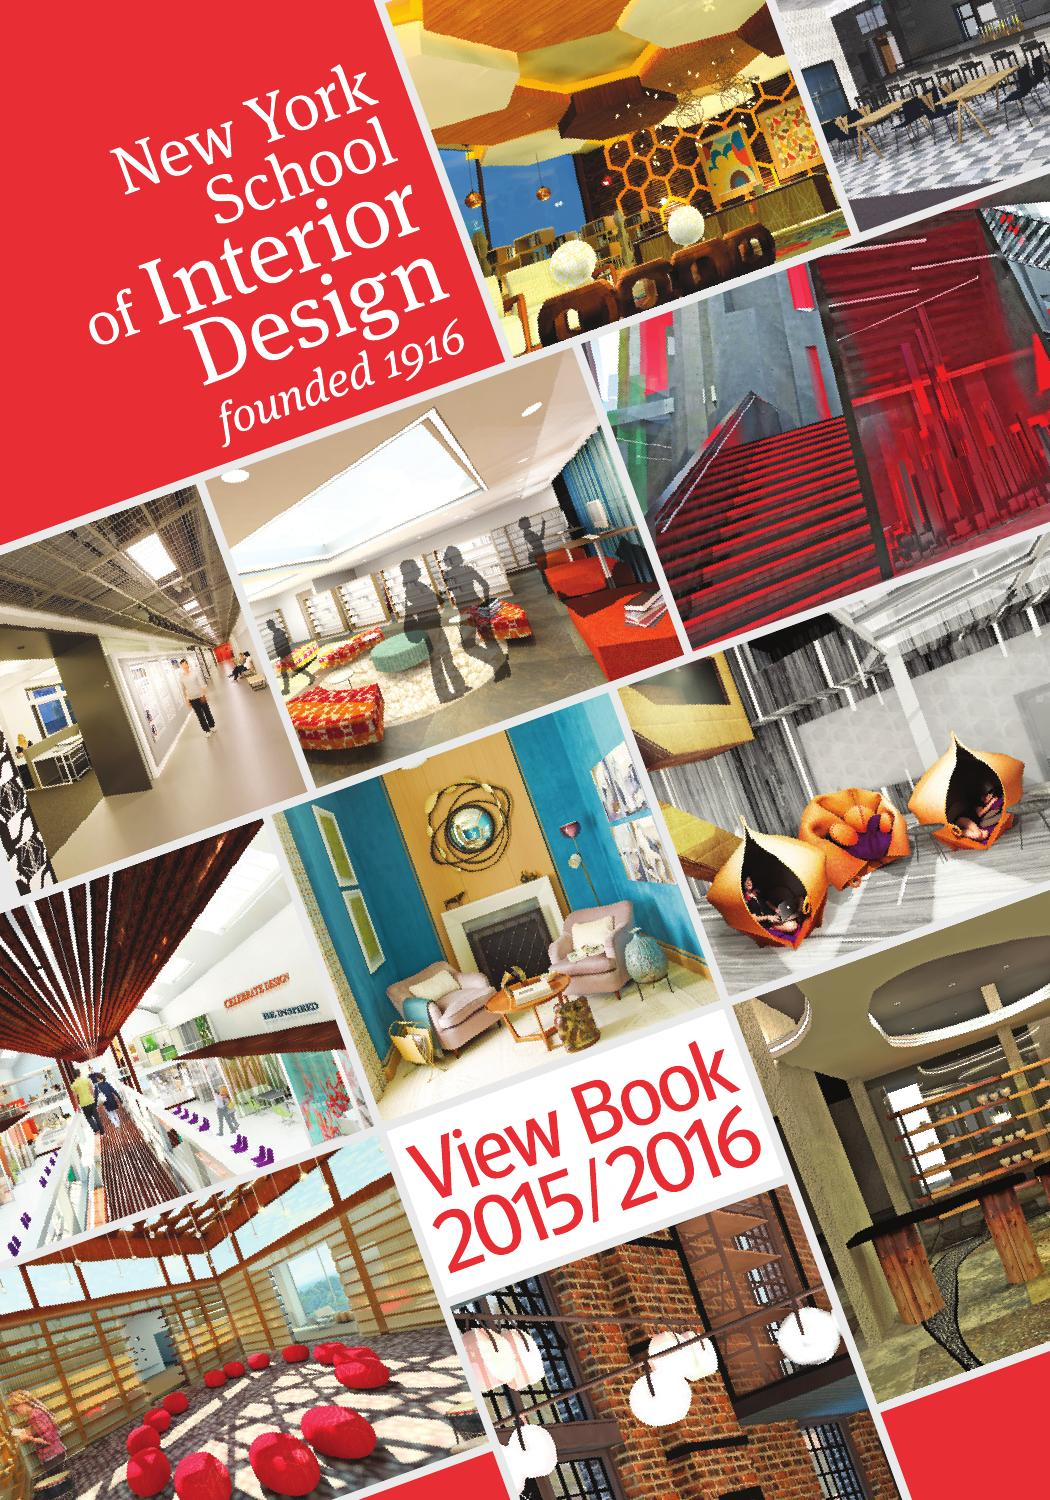 Nysid View Book 2015 2016 By New York School Of Interior Design Issuu